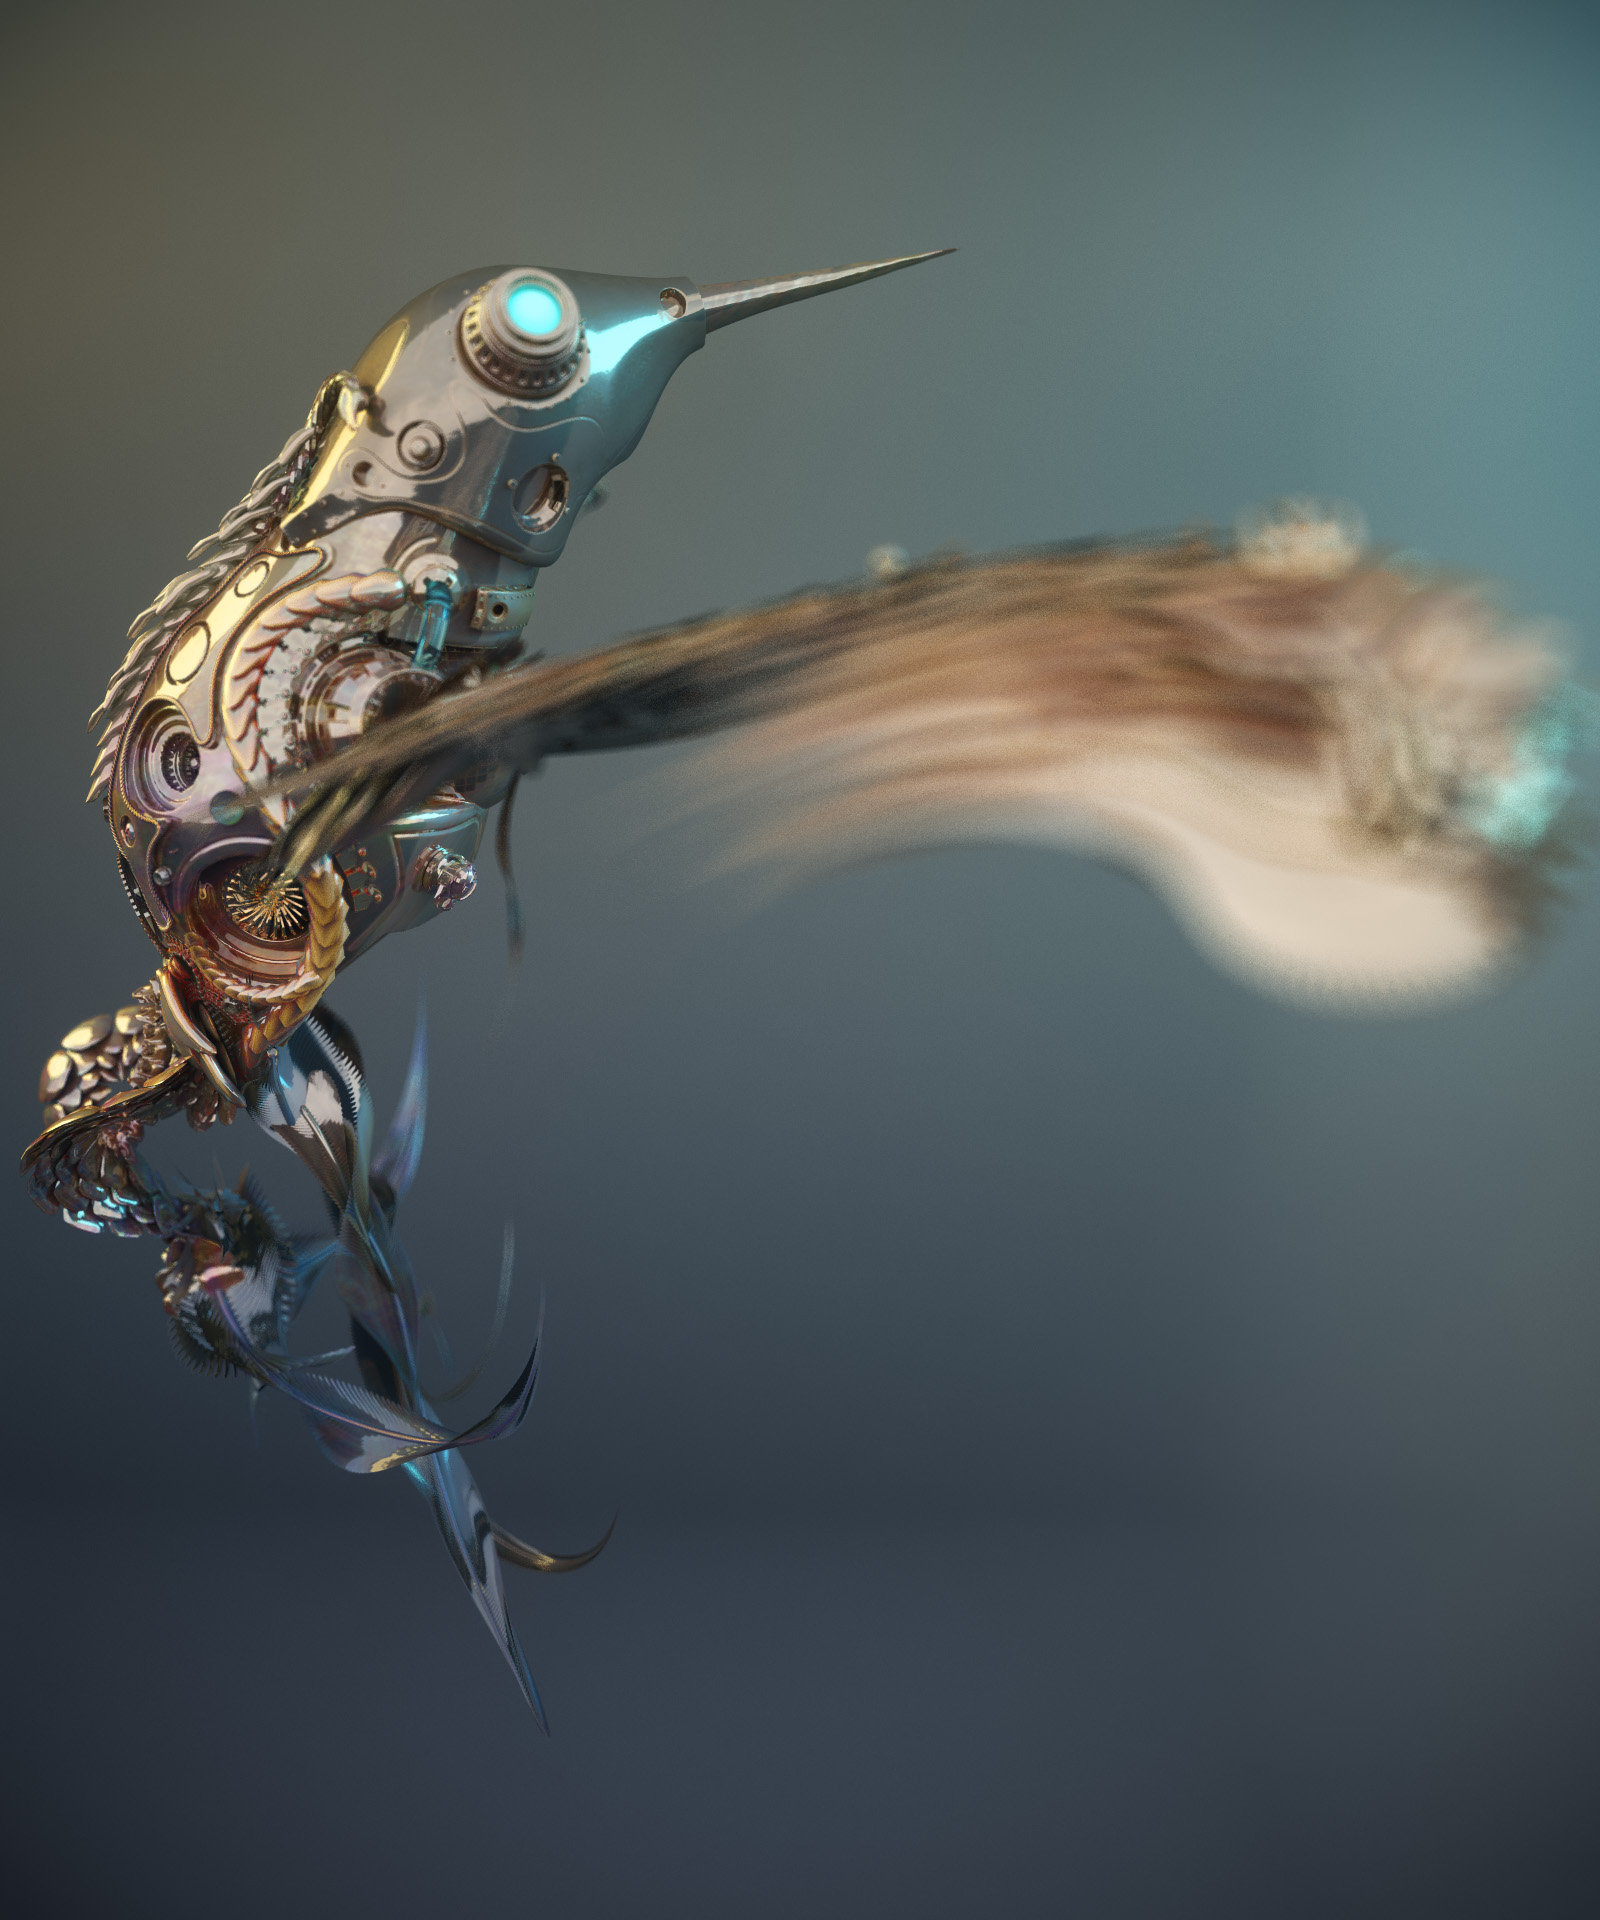 Steampunk - Hummingbird by sanfranguy